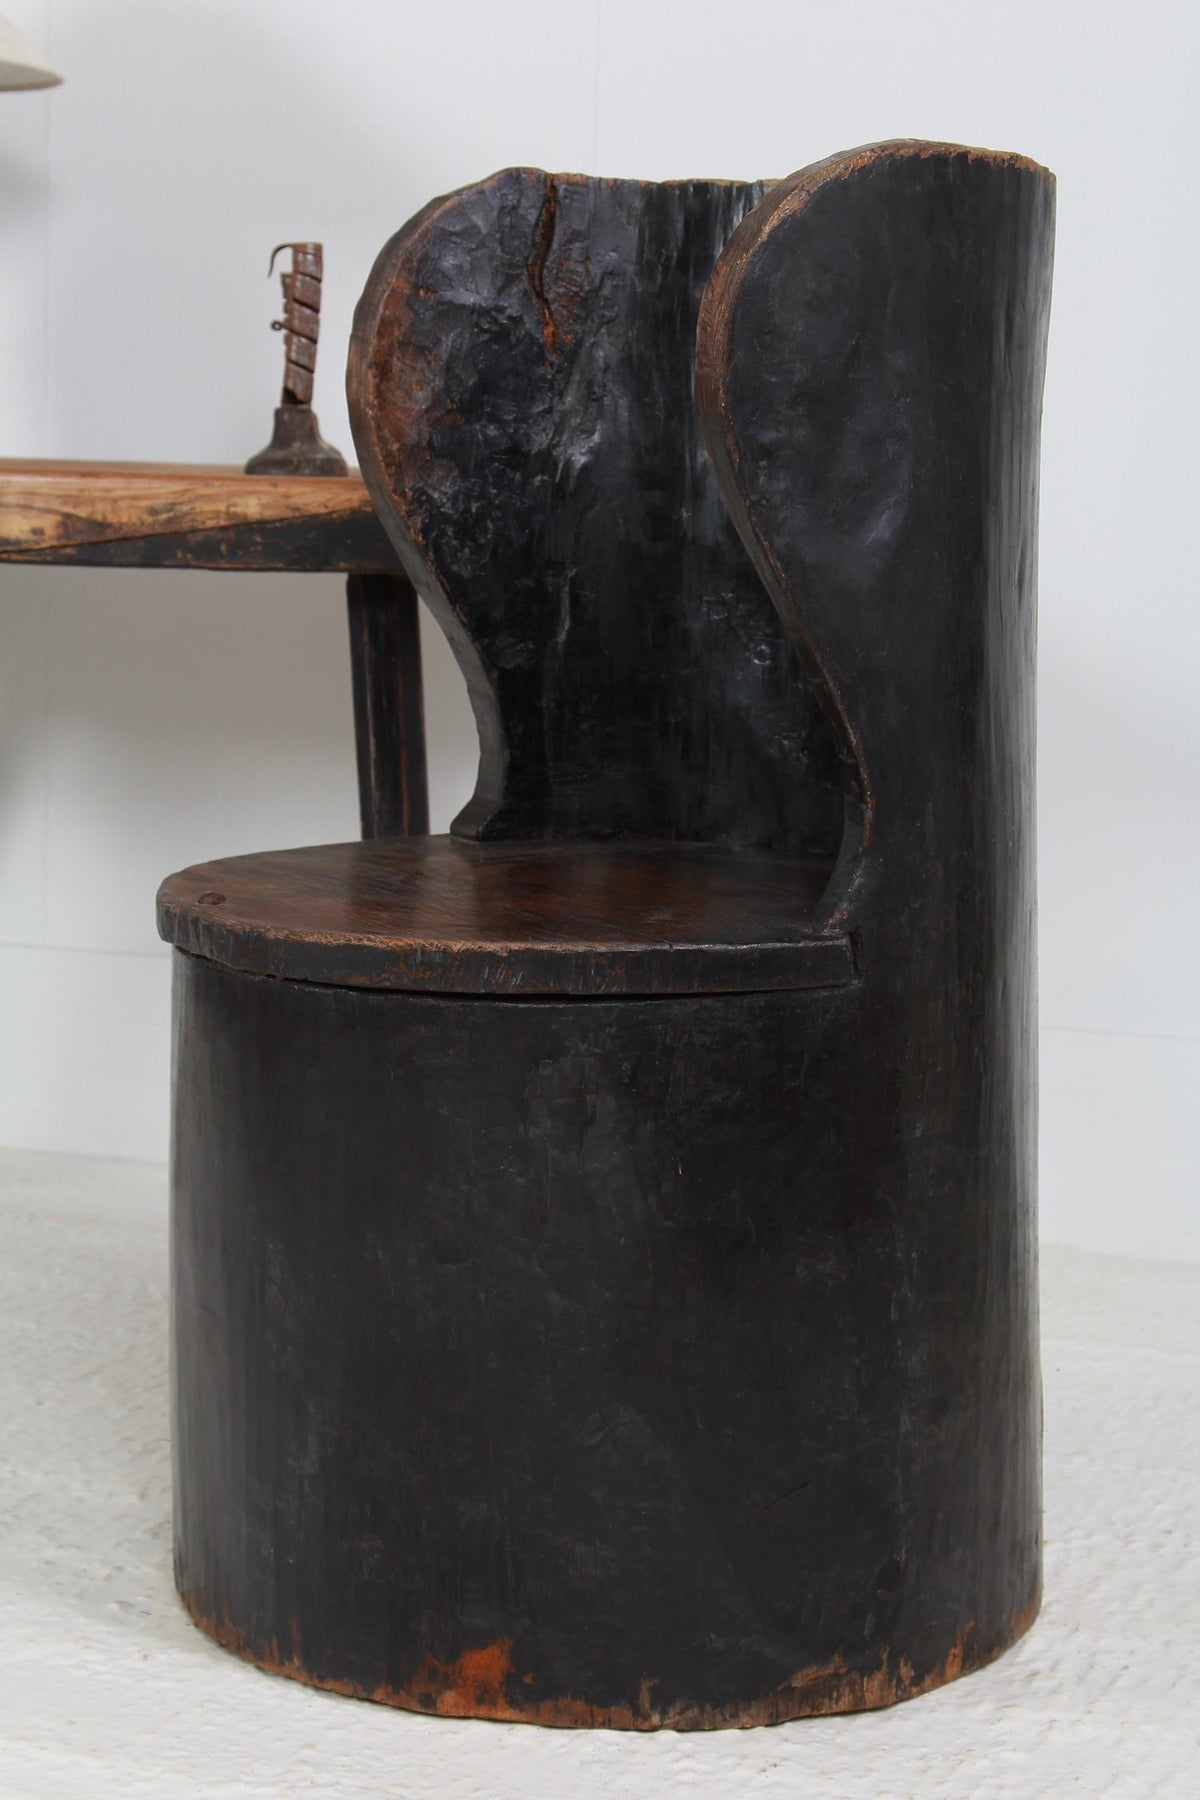 EARLY SWEDISH PRIMITIVE 18thC  DUG-OUT CHAIR